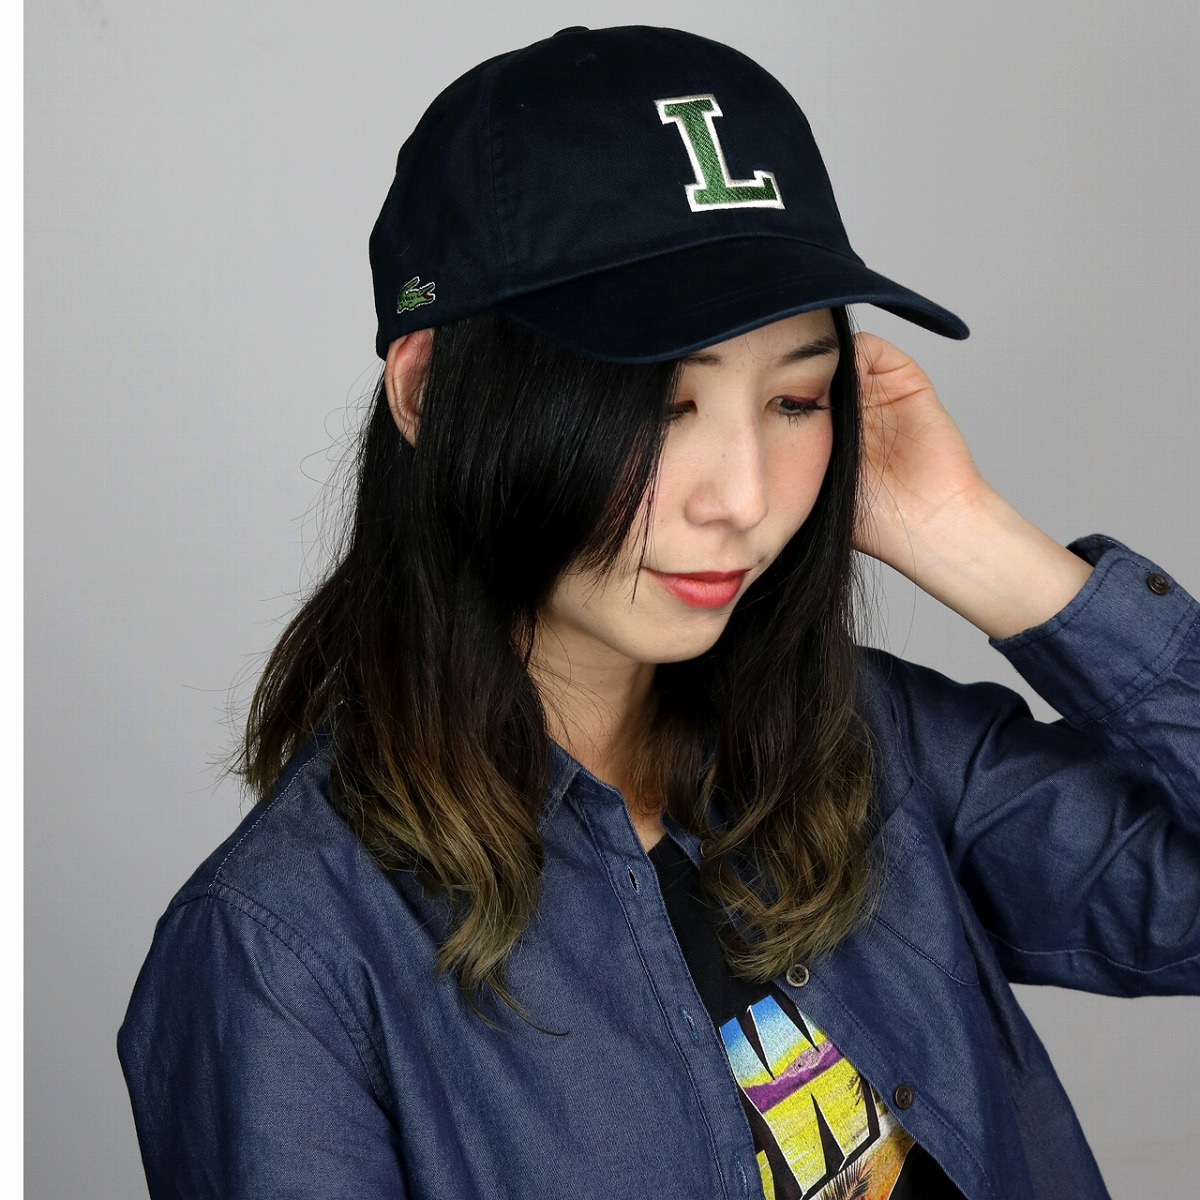 69af3054768 Hats mens Hat Cap Lacoste size adjustable cotton cap Navy (casual fashion hats  CAP and clean stylish folks casual adult casual fashion Baseball Cap  Baseball ...